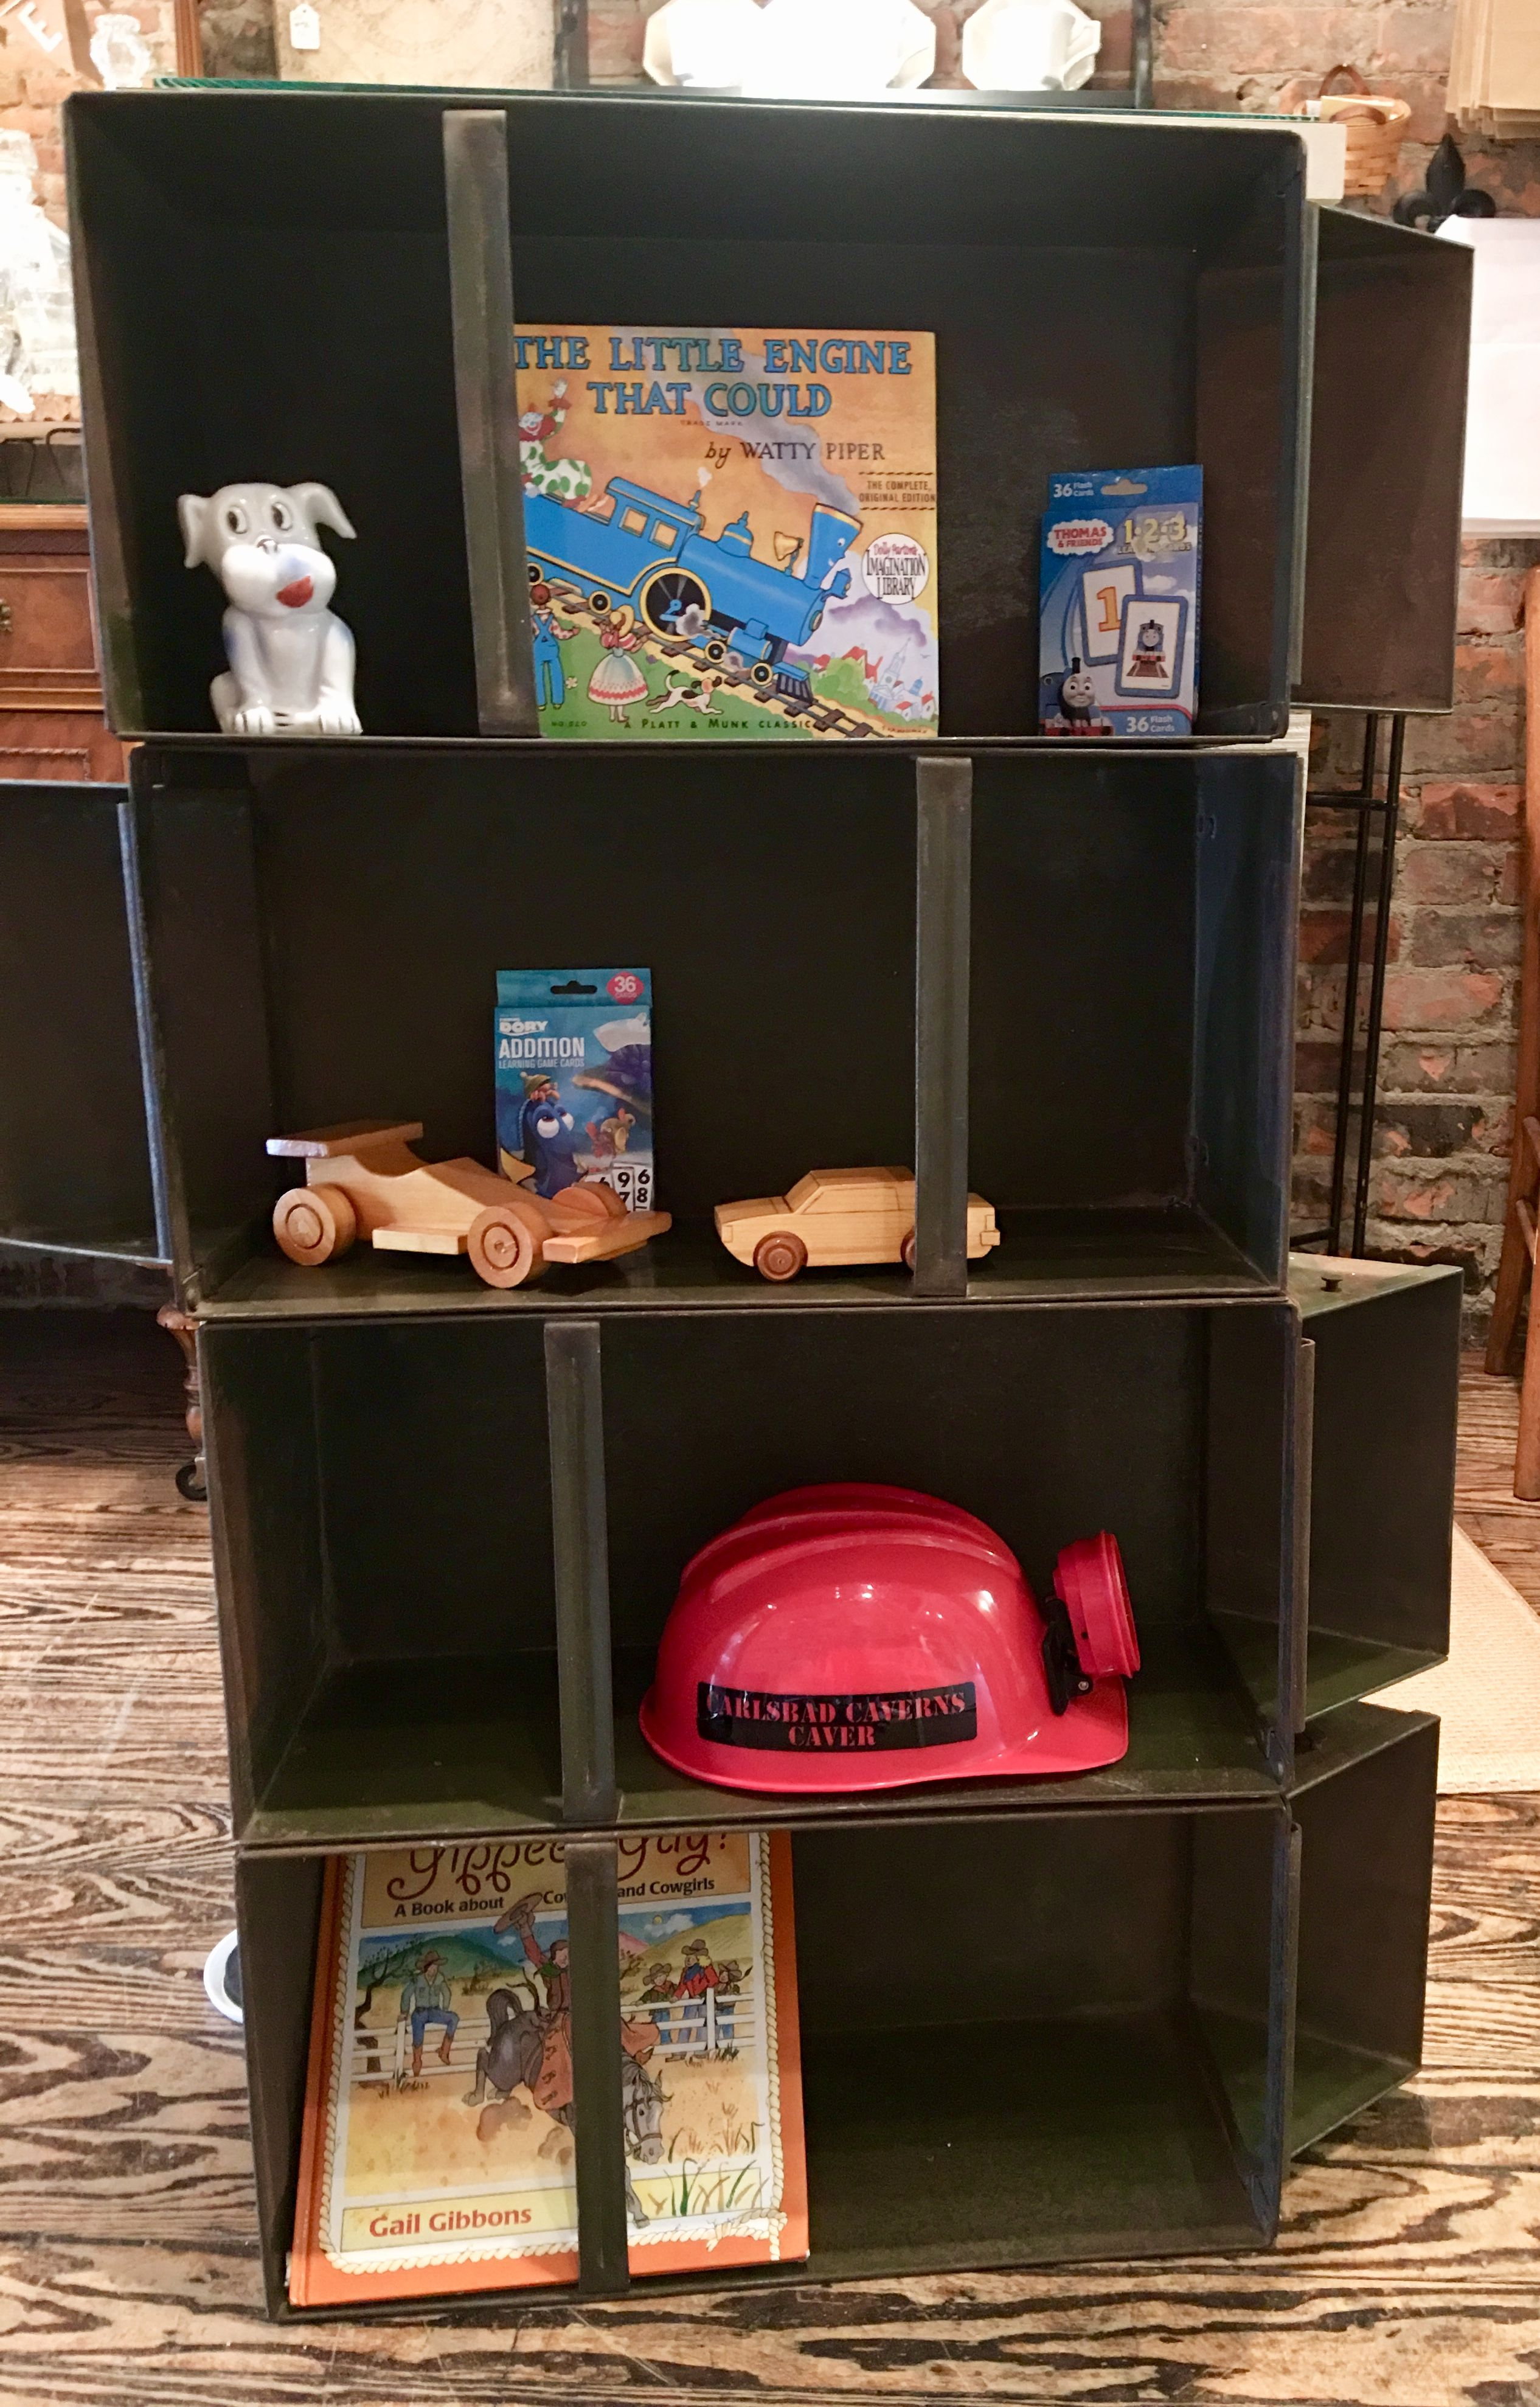 Here is perfect example of upcycling.  Old auto part bins were assembled to create this unique bookcase.  Stop in the shop and see us!  🇺🇸 Memorial Weekend Hours: 🇺🇸  Friday: 11am-3pm  Saturday, Sunday and Monday: Closed  #upcycle #upcycling #upcyclingproject #upcyclingideas #upcyclinglife #shoplocalmacomb #shoplocal #makemacombyourhome #downtownromeo #shopdowntownromeo #romeomichigan #locallove #uniquehomedecor #bookcaseideas #bookcase #bookshelves #shelvingideas #metrodetroitmommy